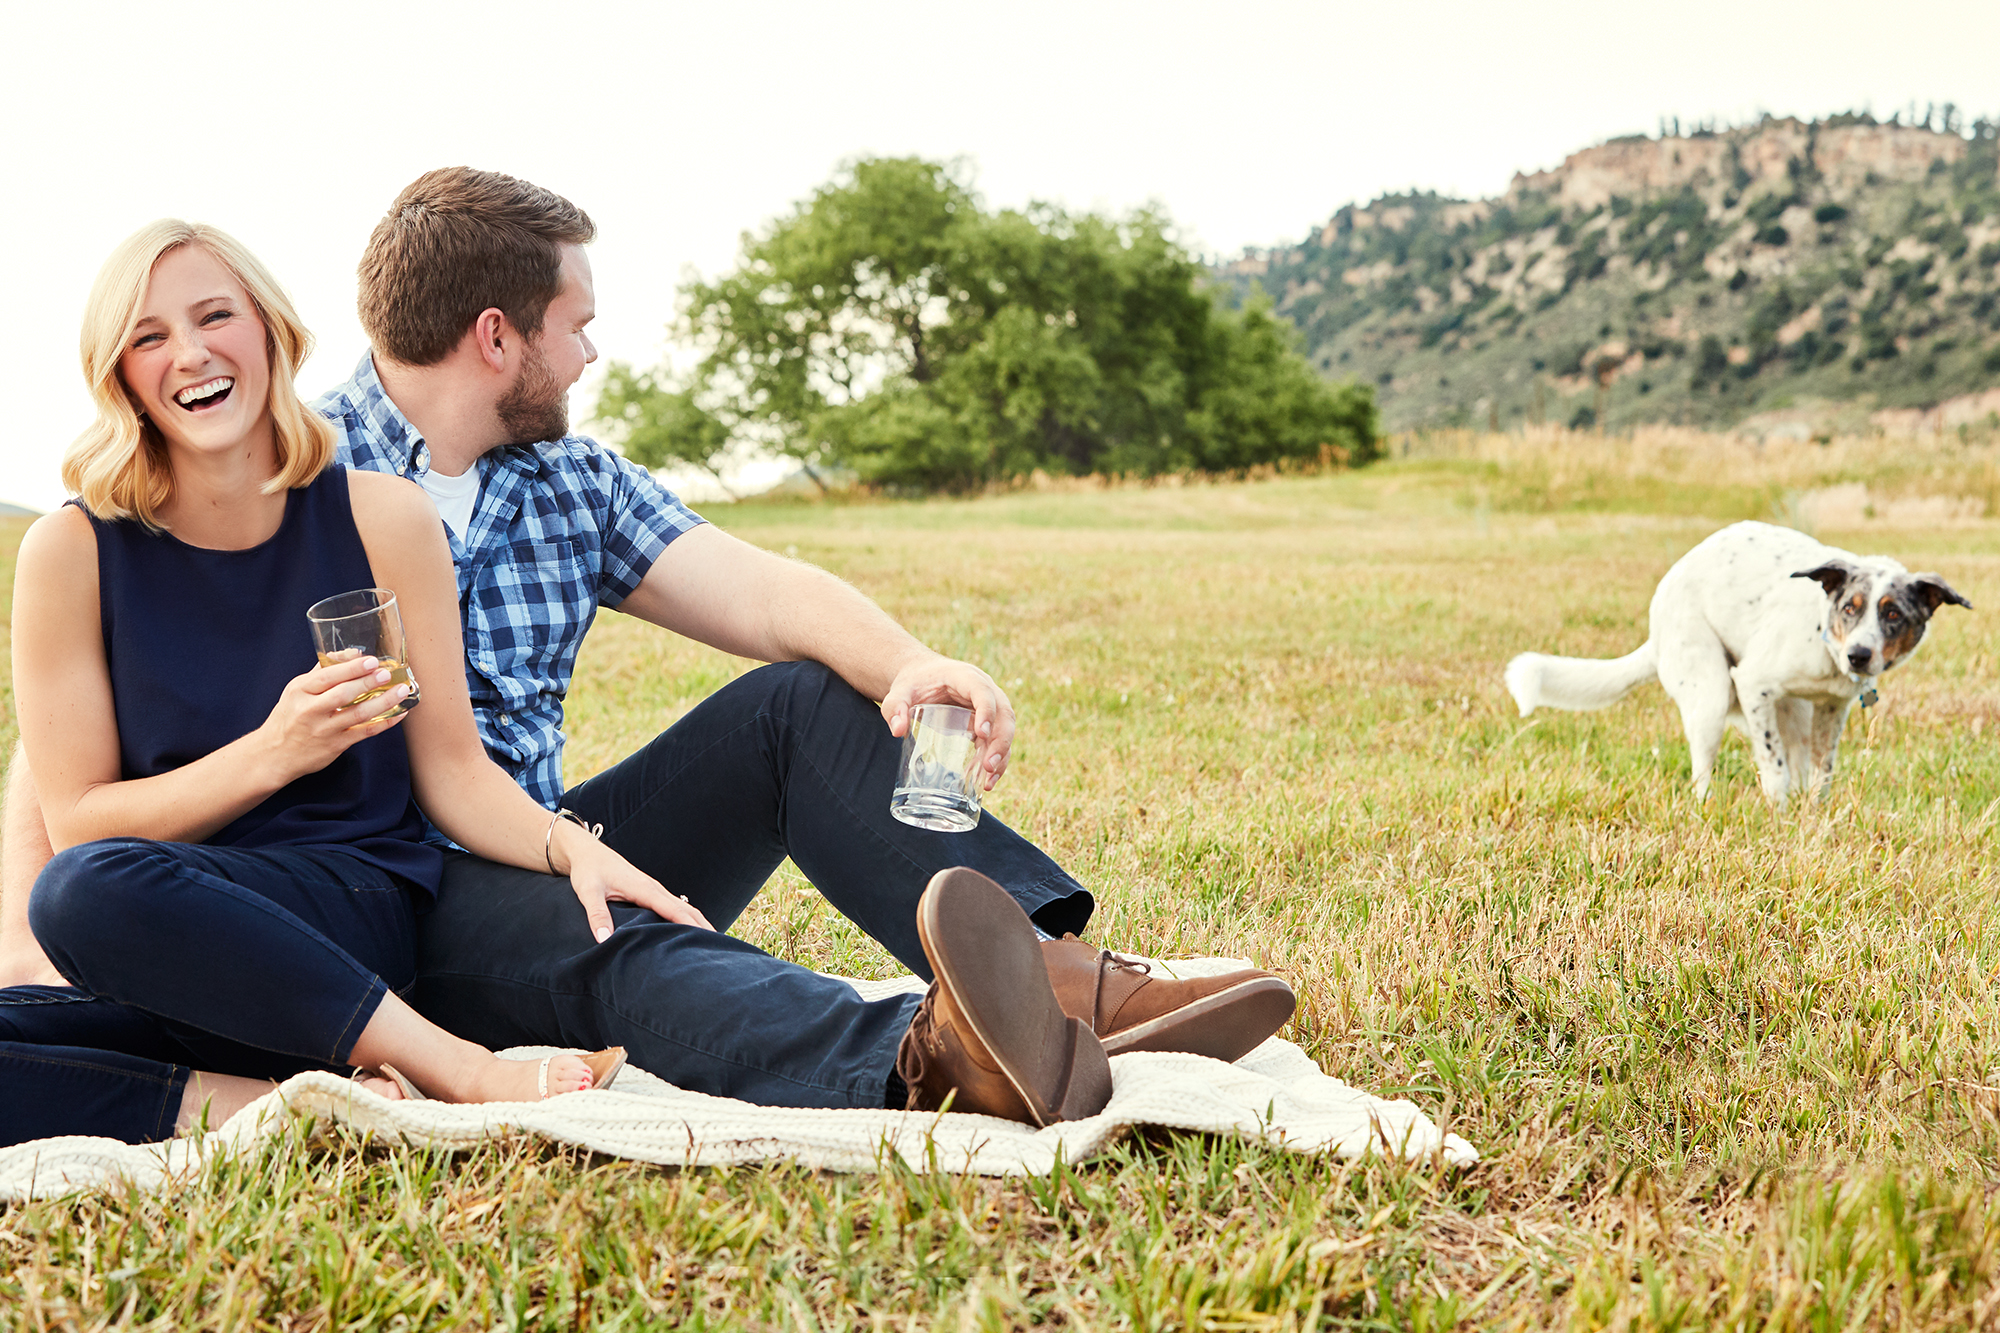 Theresa + Max's Picnic Engagement Photos - CO Engagements // Dog Family // Bourbon // BanjosCandid Engagement Photography Blog Post